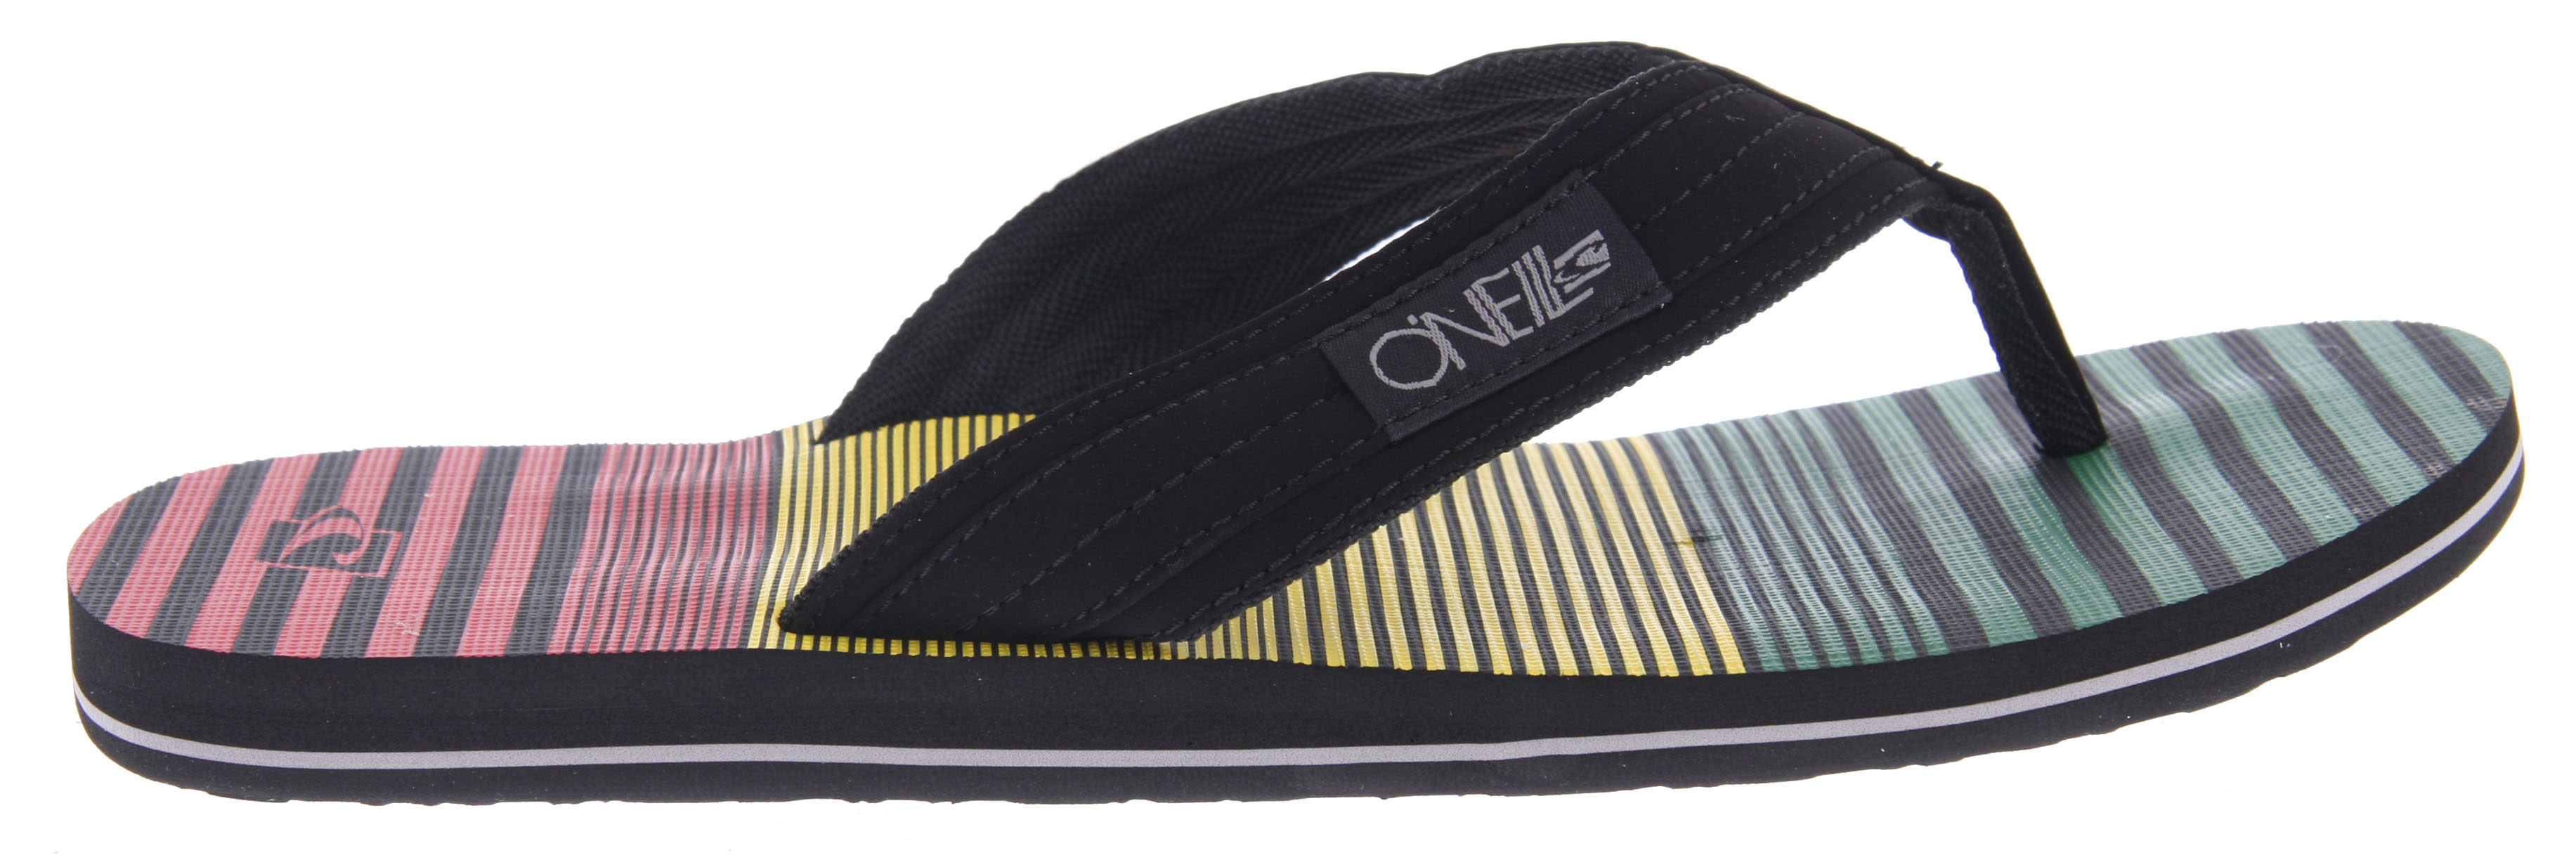 Surf Key Features of the O'Neill Imprint Daddy Sandals: PU nubuck upper Woven label on strap Embossed logo on heel Anatomically constructed arch support Rubber outsole Printed footbed - $12.95